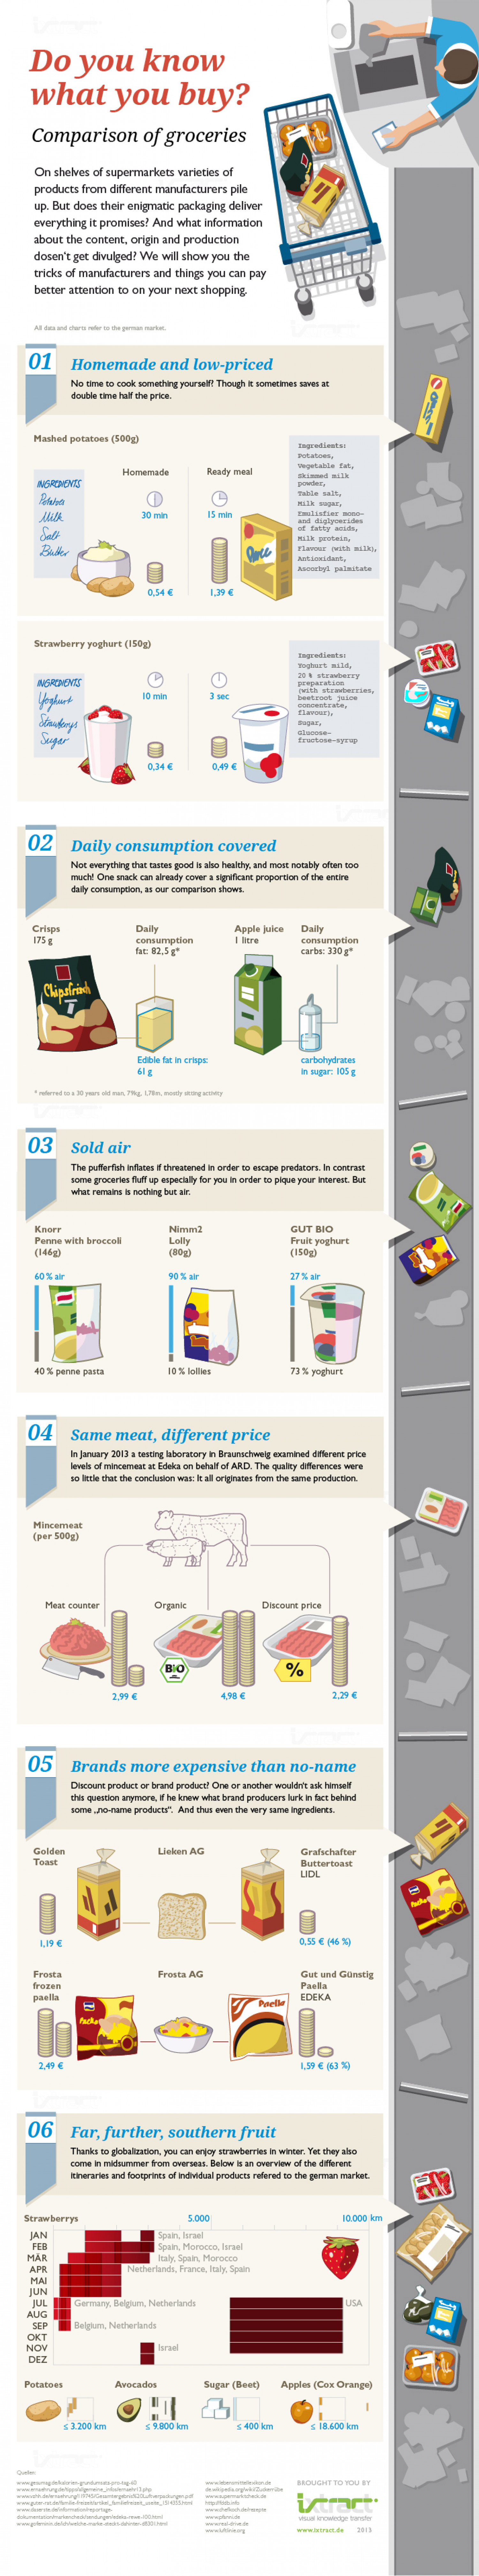 ixtract | Do you know what you buy? Infographic